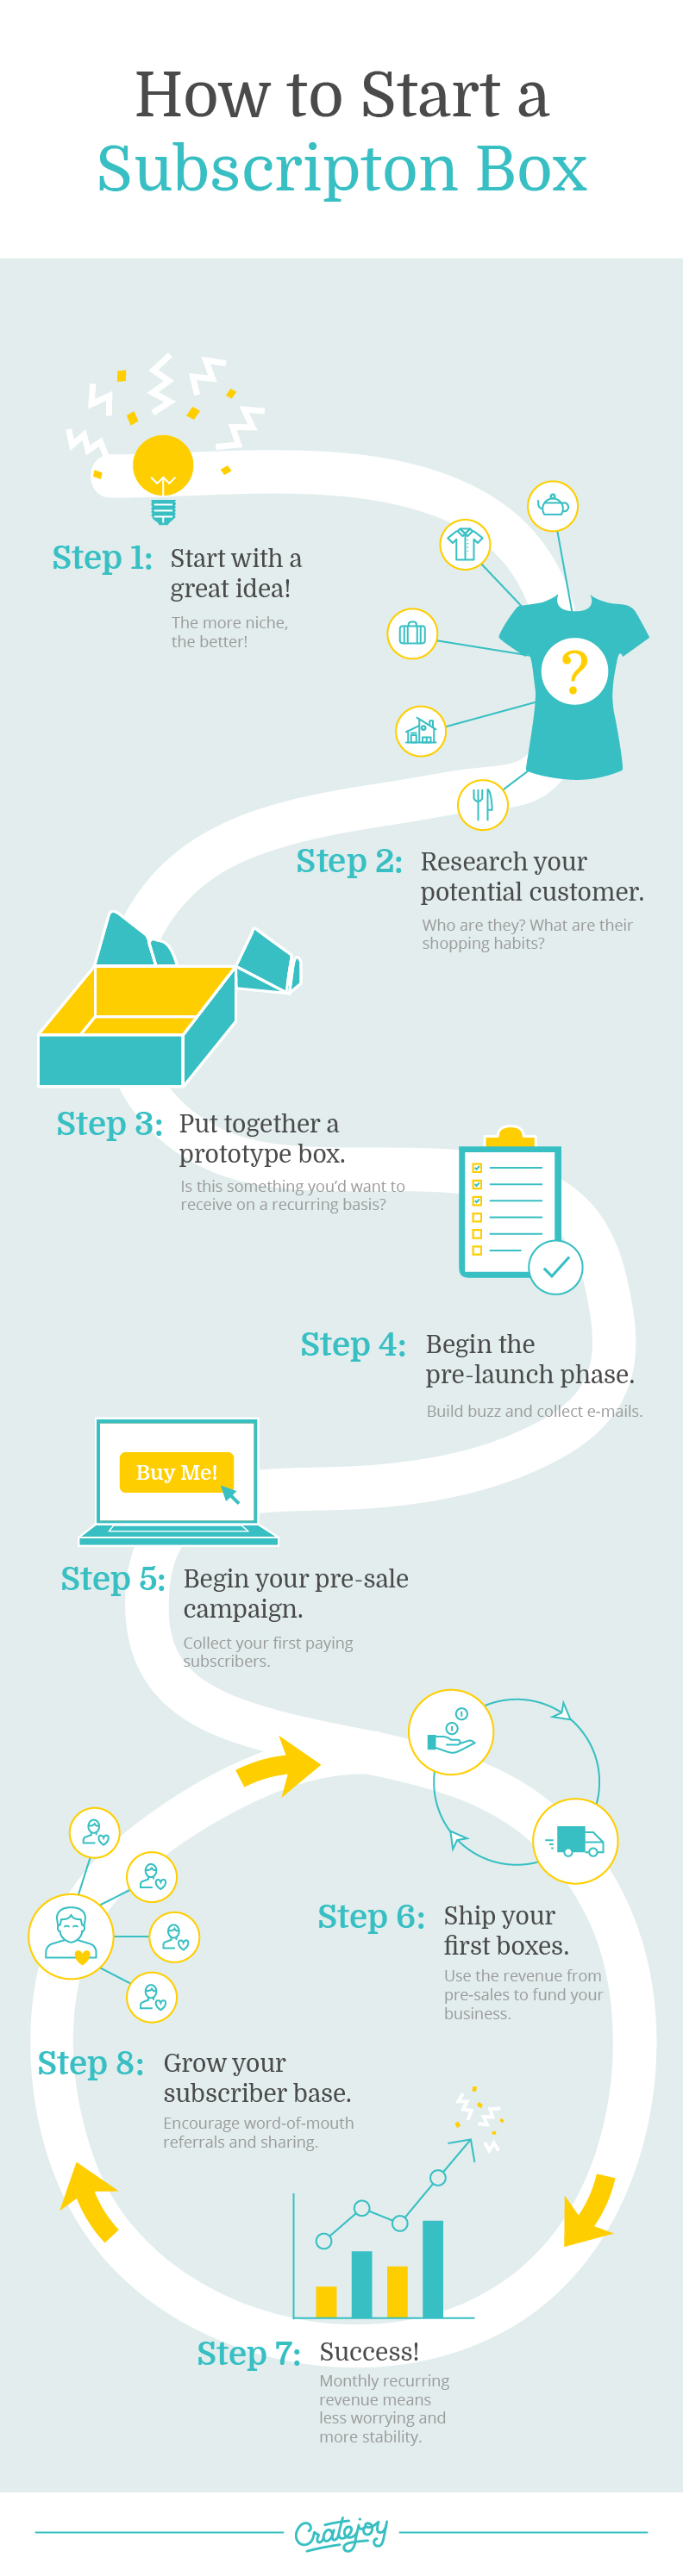 How to Start a Subscription Box Business Infographic